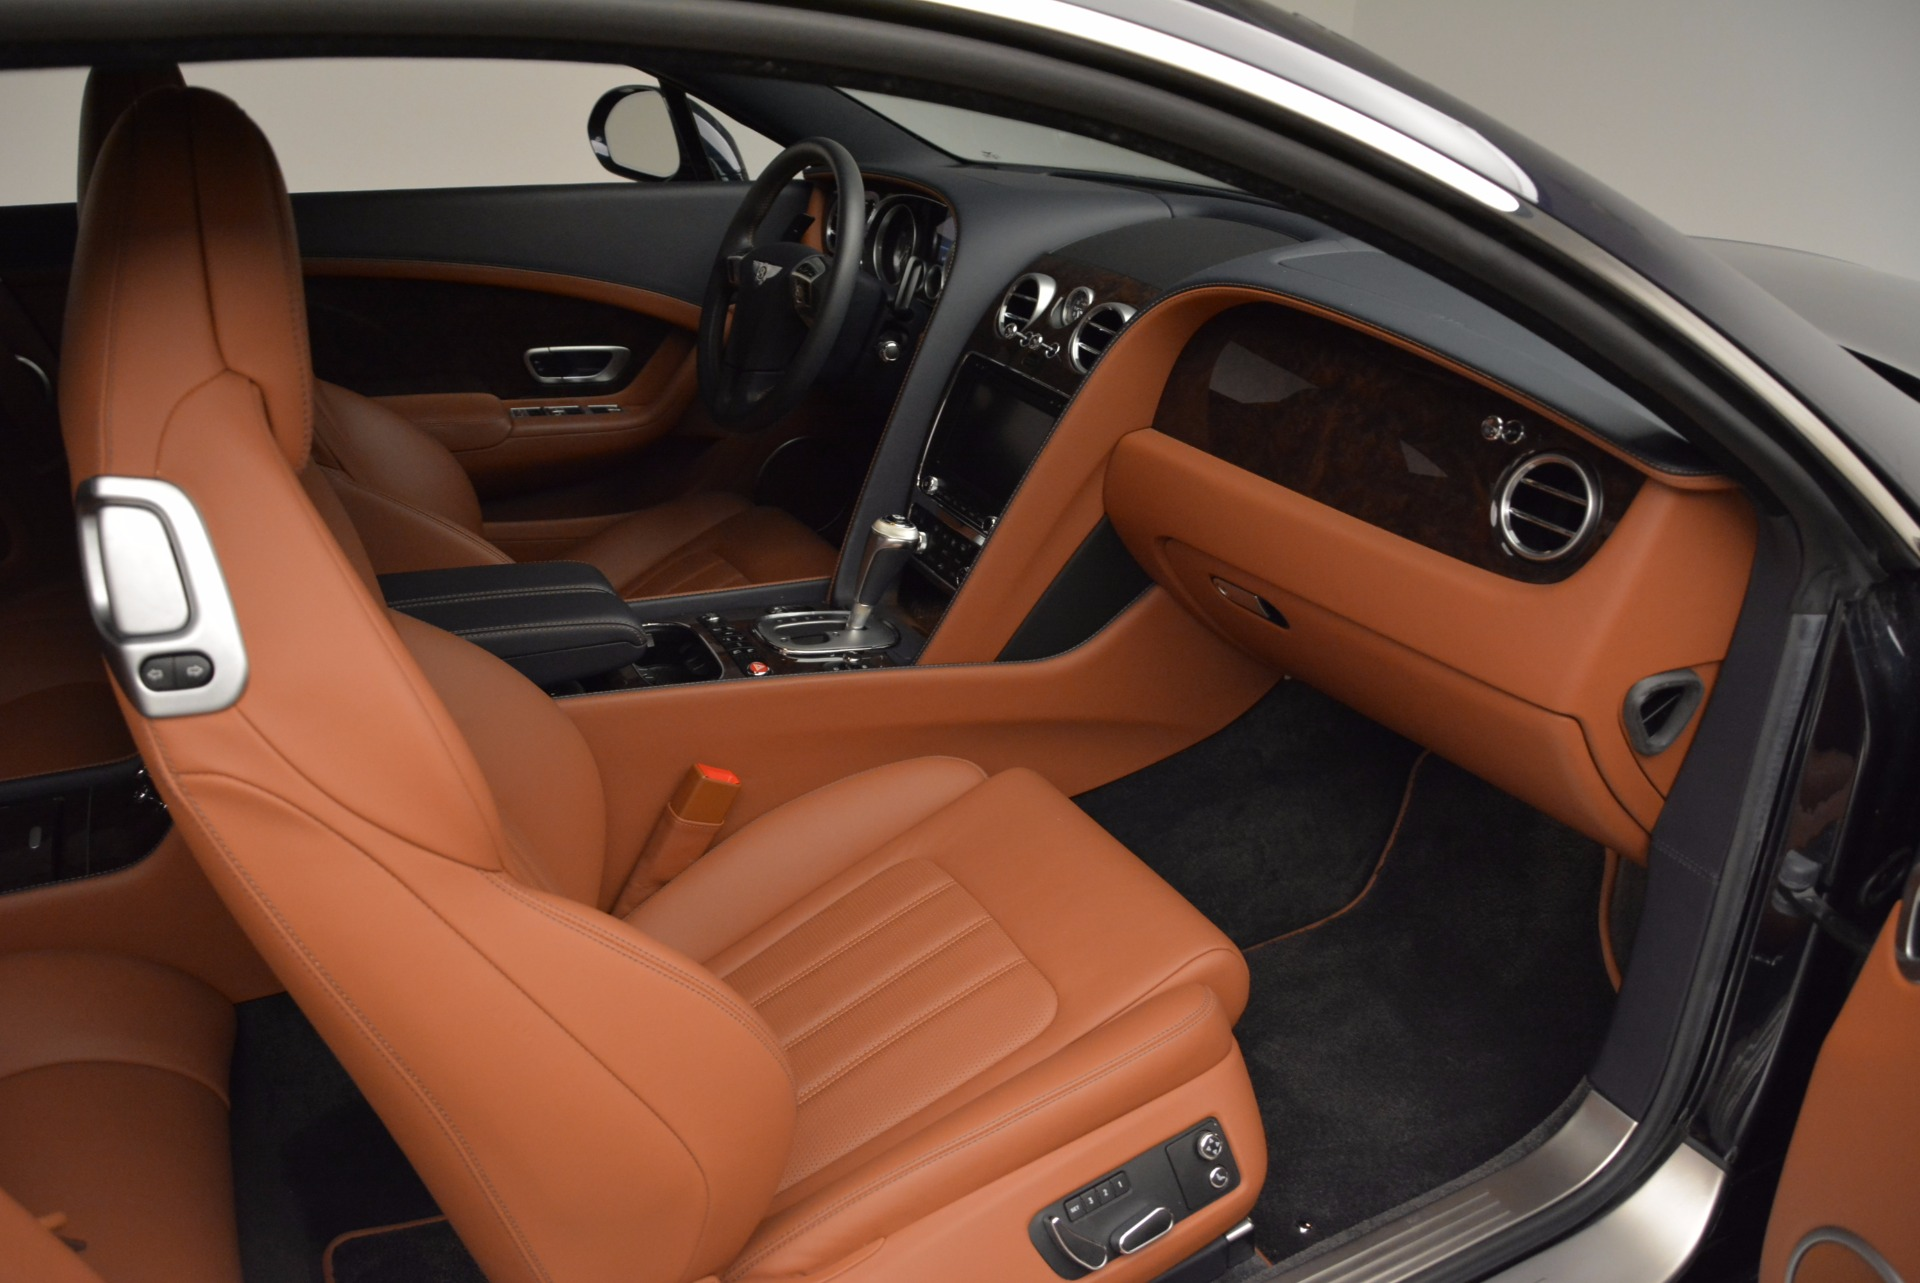 Used 2014 Bentley Continental GT W12 For Sale In Westport, CT 1845_p31